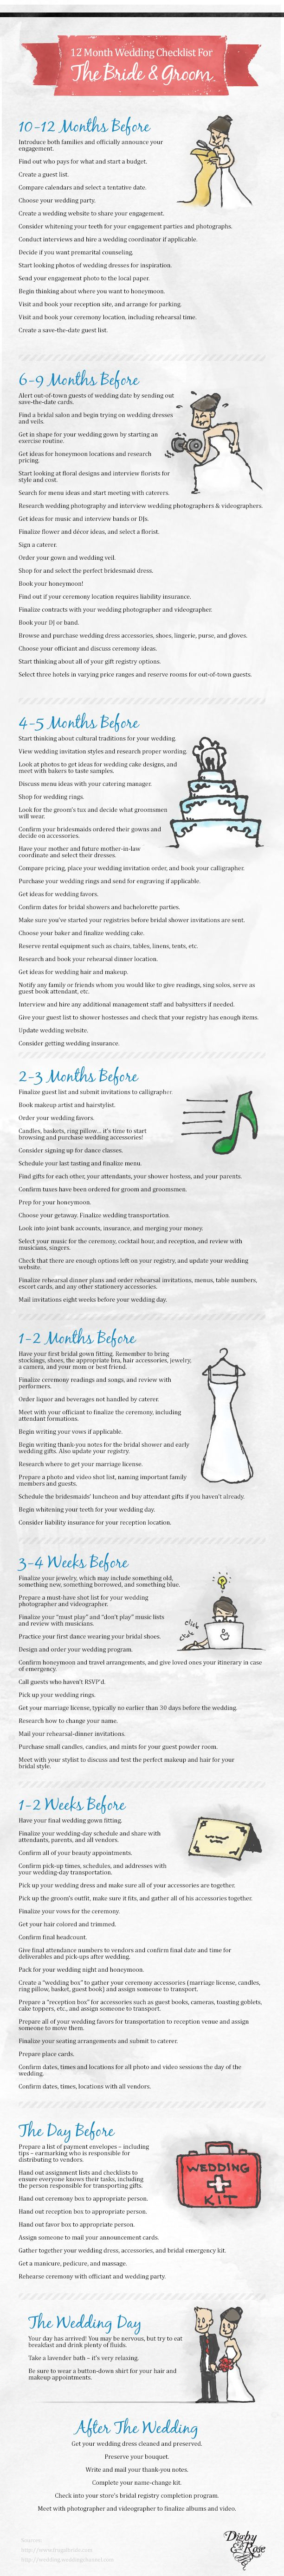 on pinterest wedding day timeline wedding and baby shower checklist